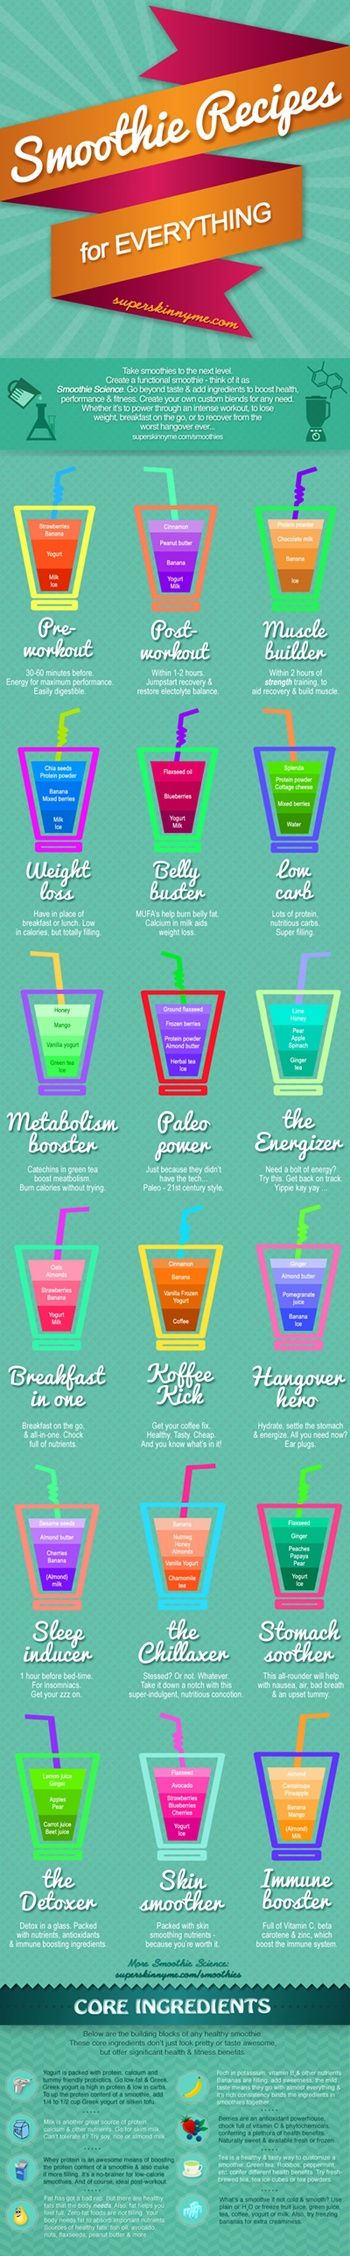 The Ultimate Smoothie Recipes